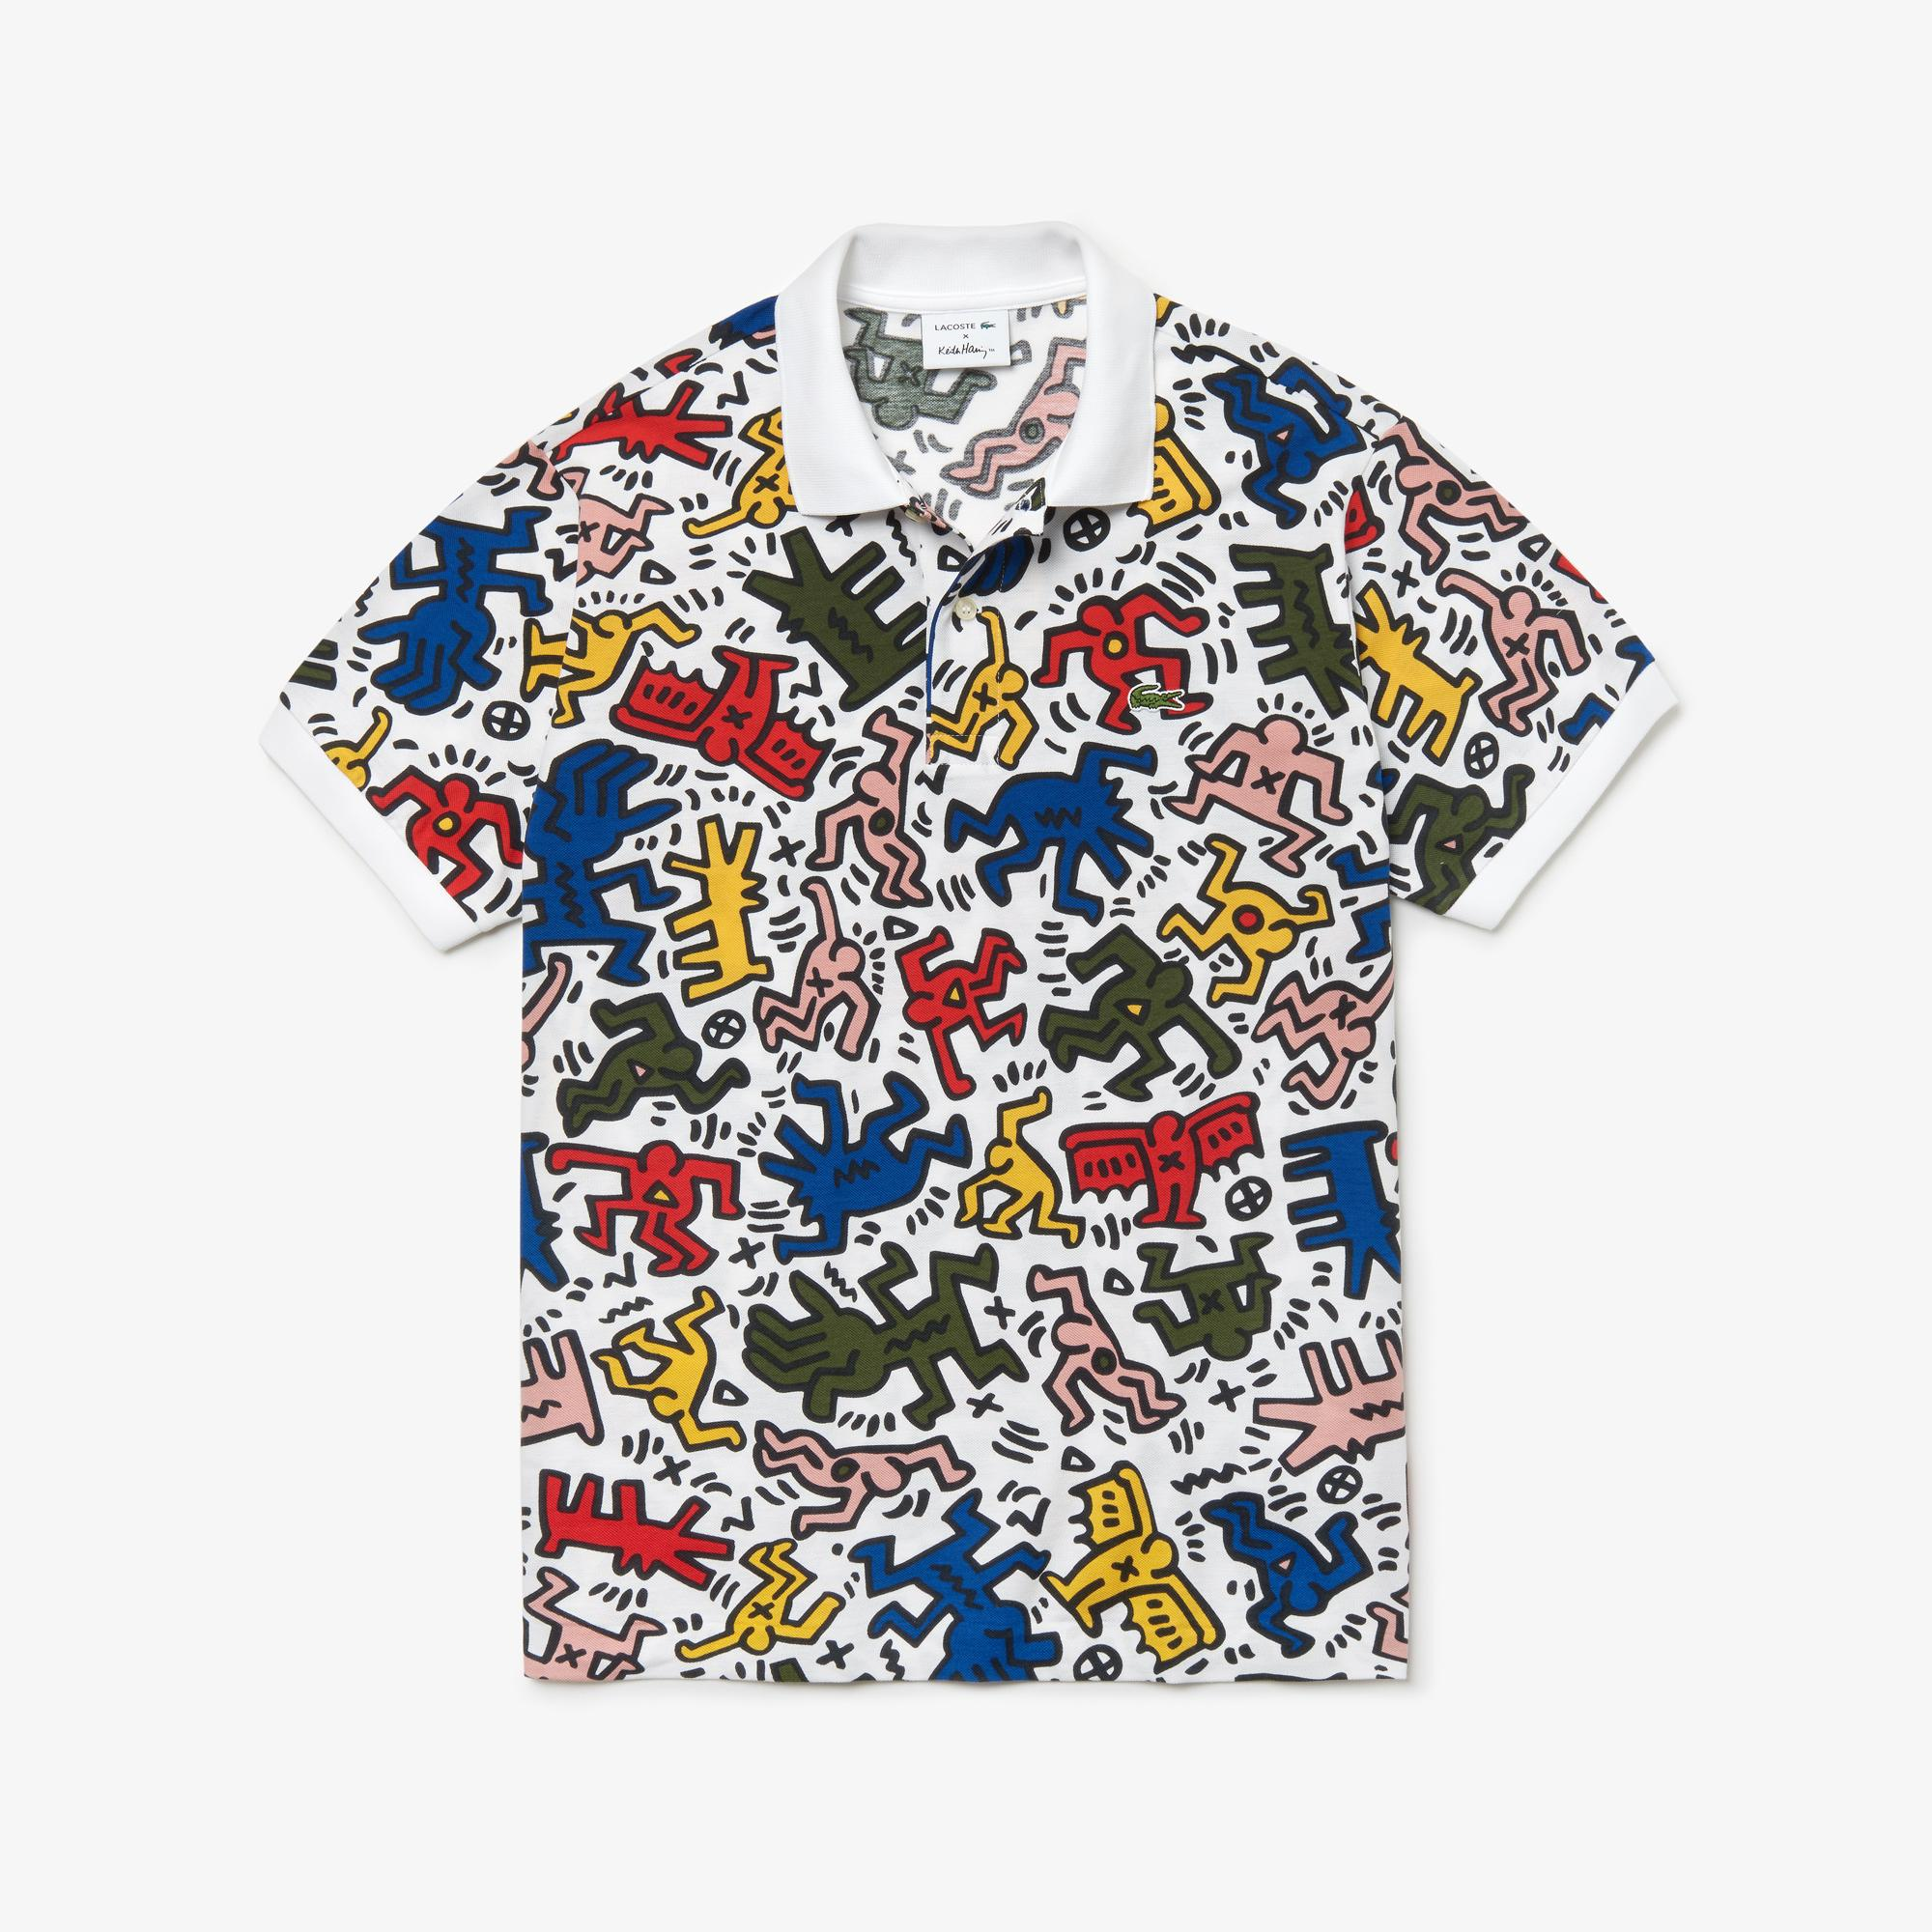 Lacoste X Keith Haring Men's Short Sleeve Polo